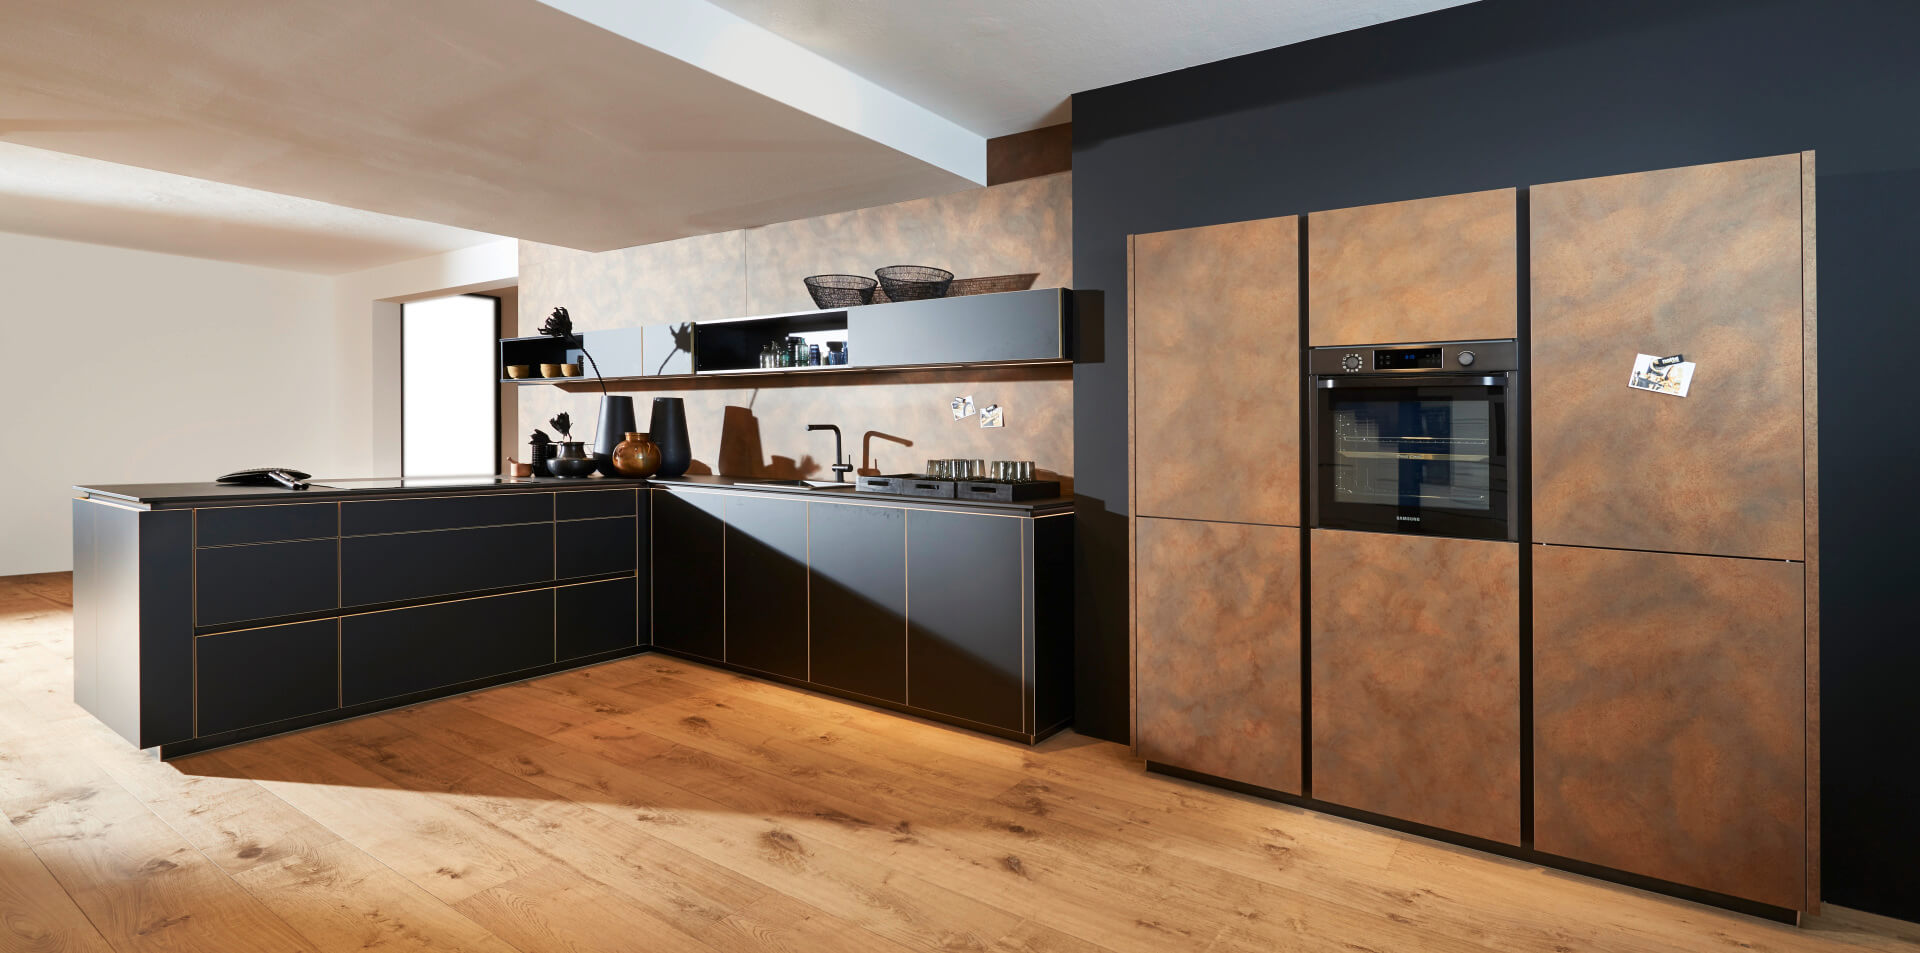 Nolte-Kitchens-Ferro-Gallery6